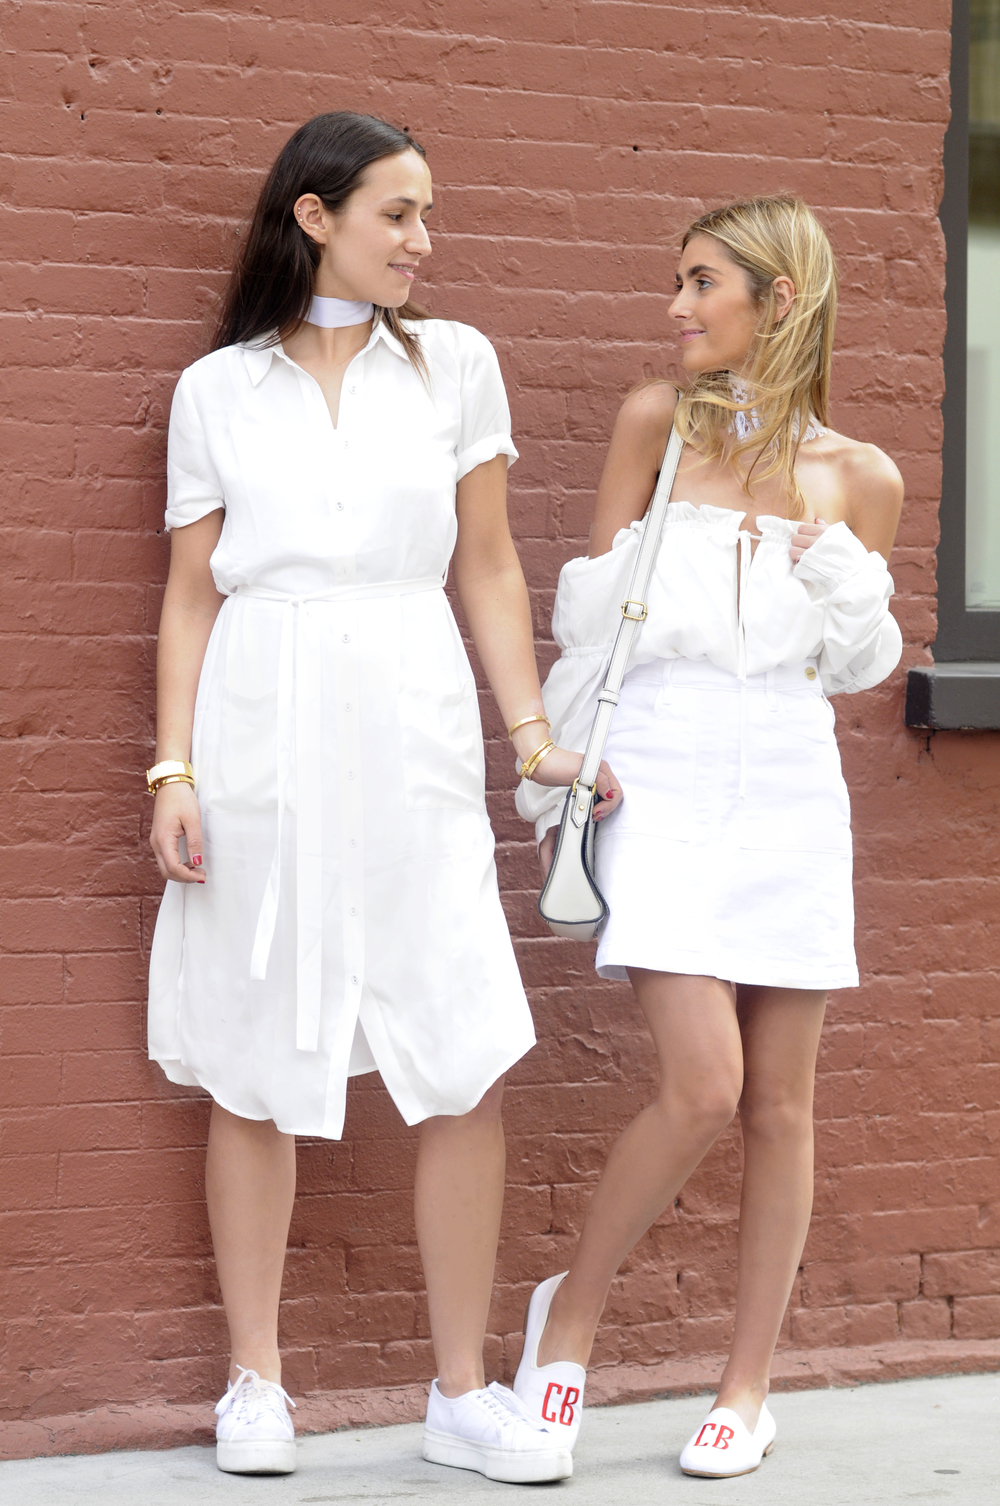 BICKLEY SISTER NYC BLOGGERS CUTE PIC